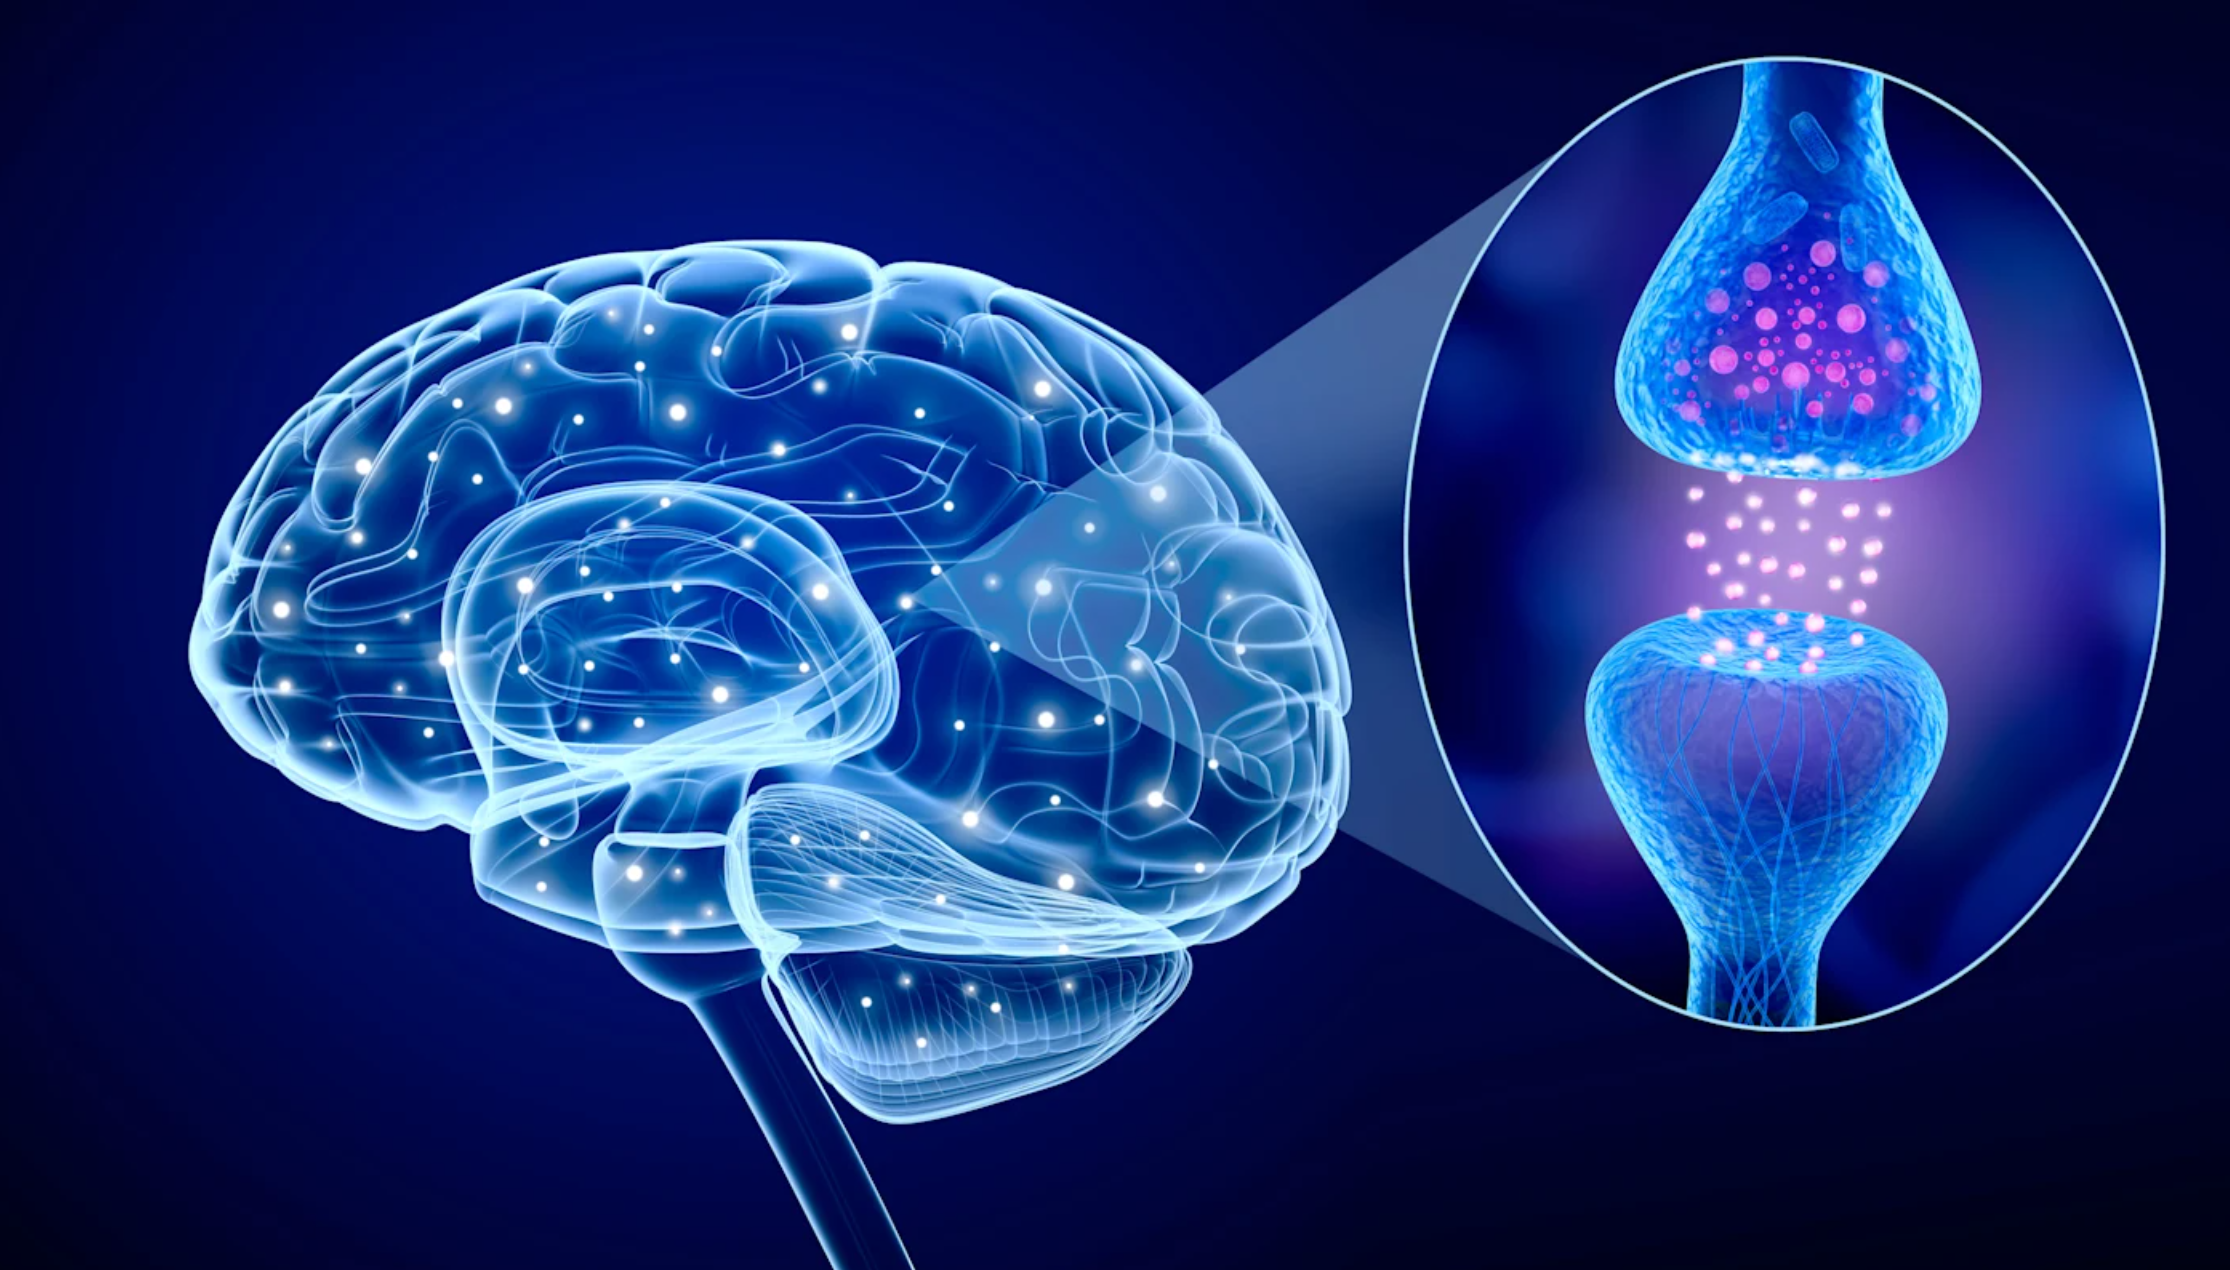 Neuroscience discovery revolutionizes treatment of anxiety and panic attacks